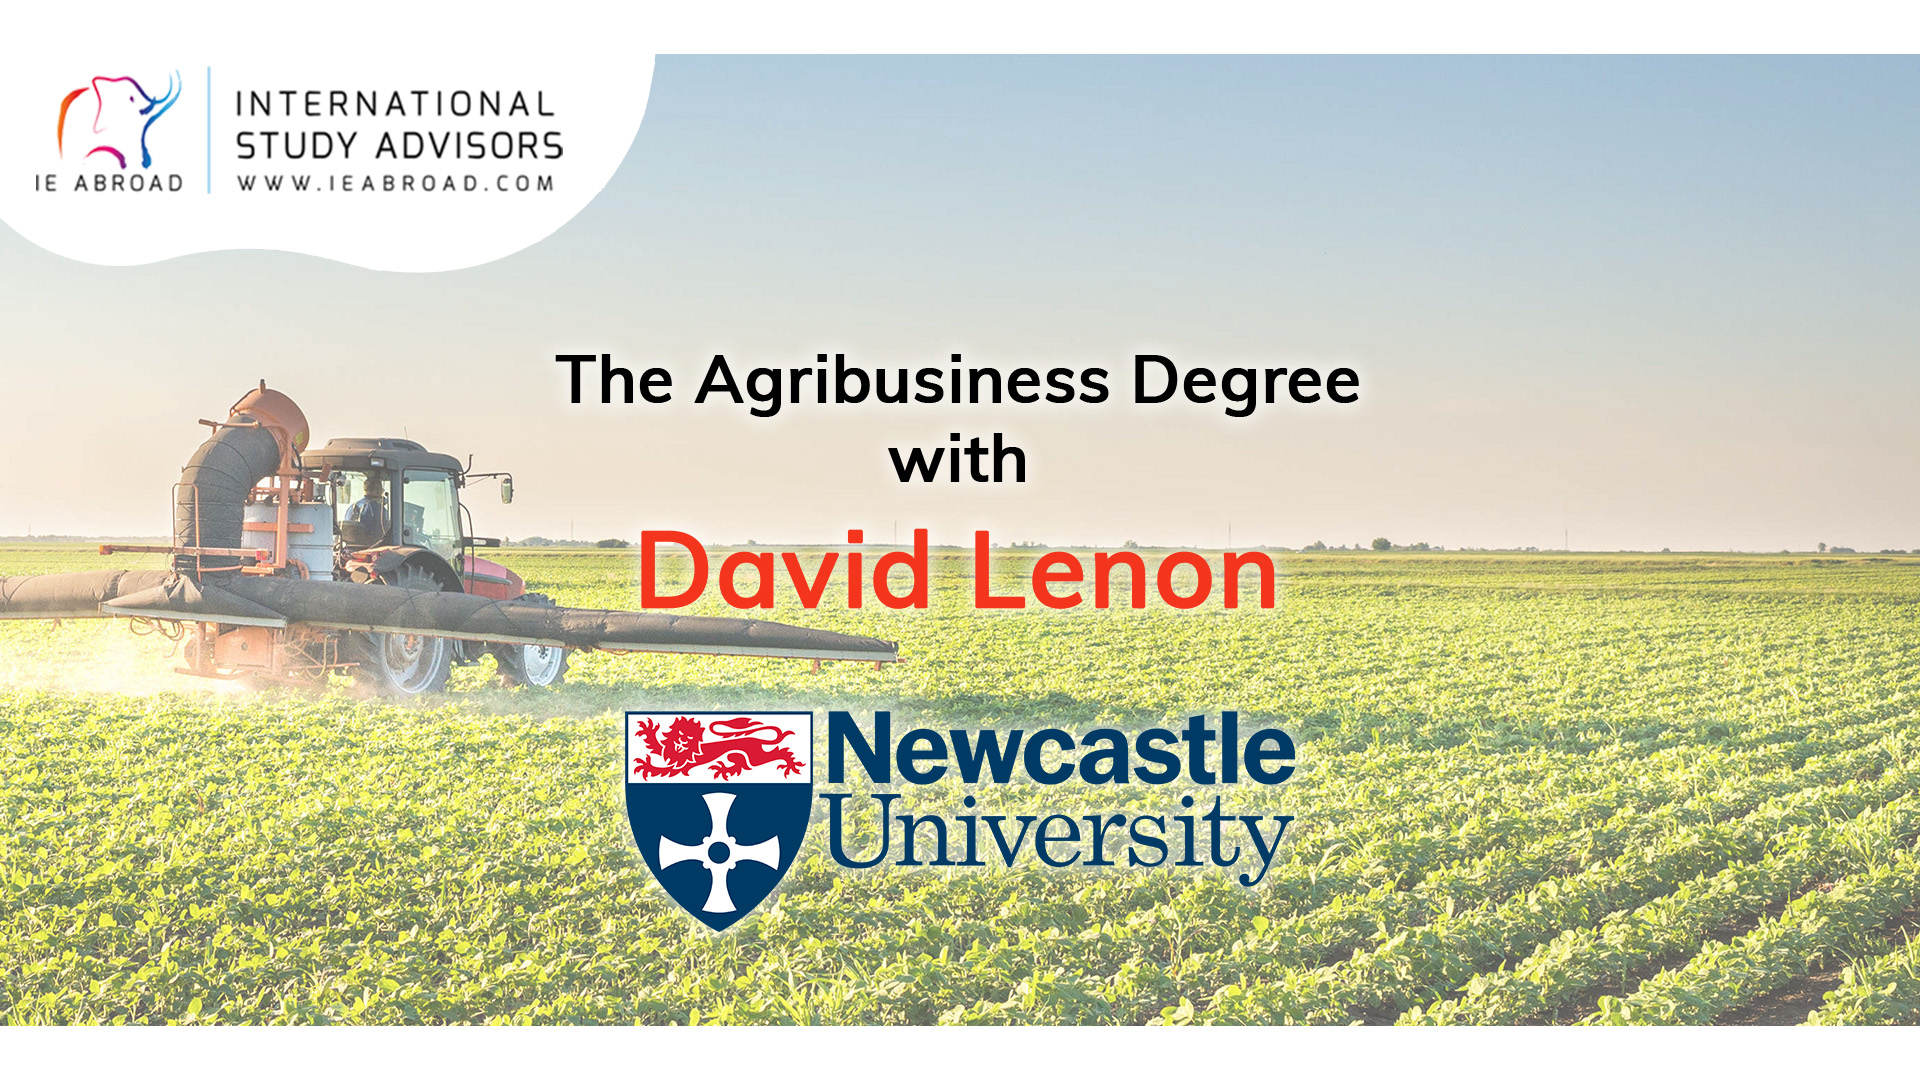 The AgriBusiness Degree with David Lenon | Newcastle University